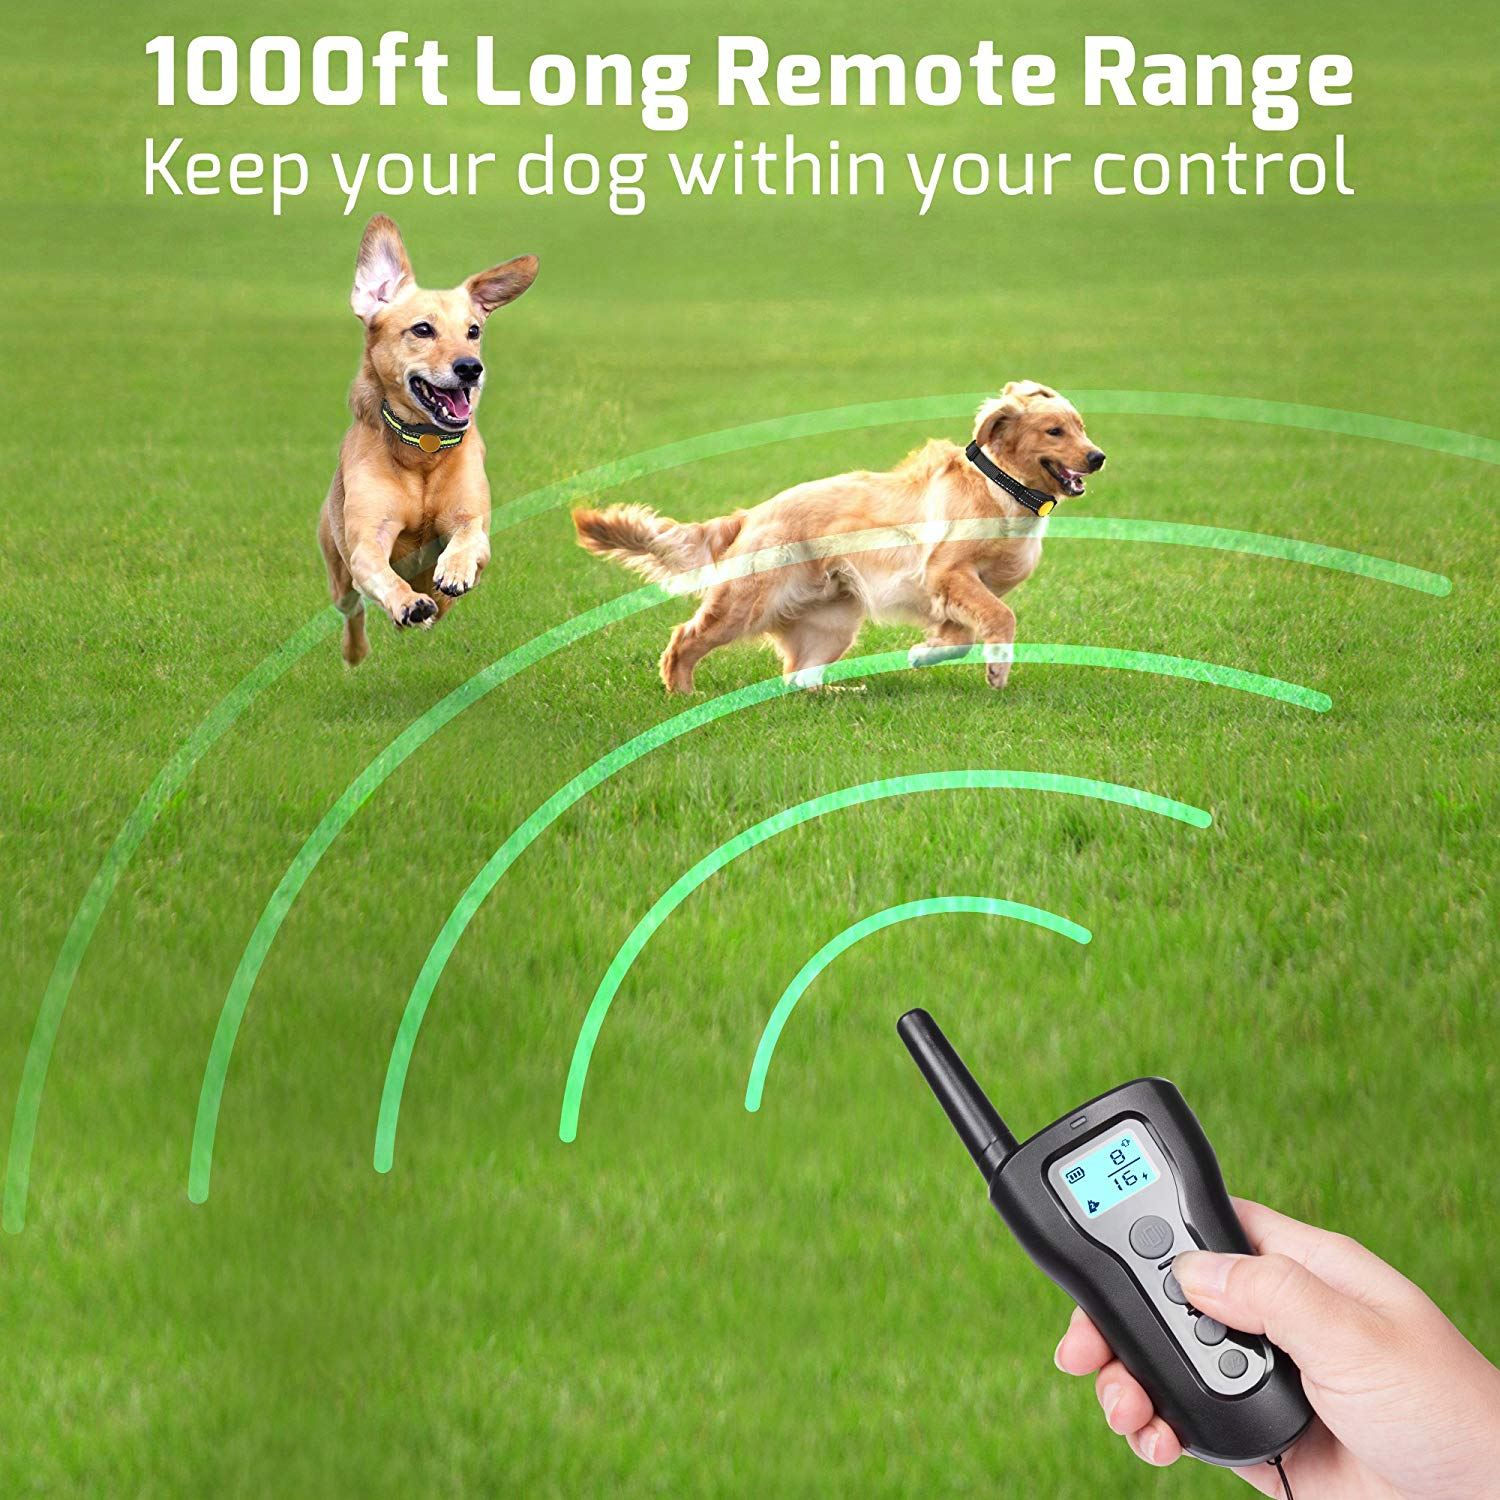 320 2 dogs remote range.jpg